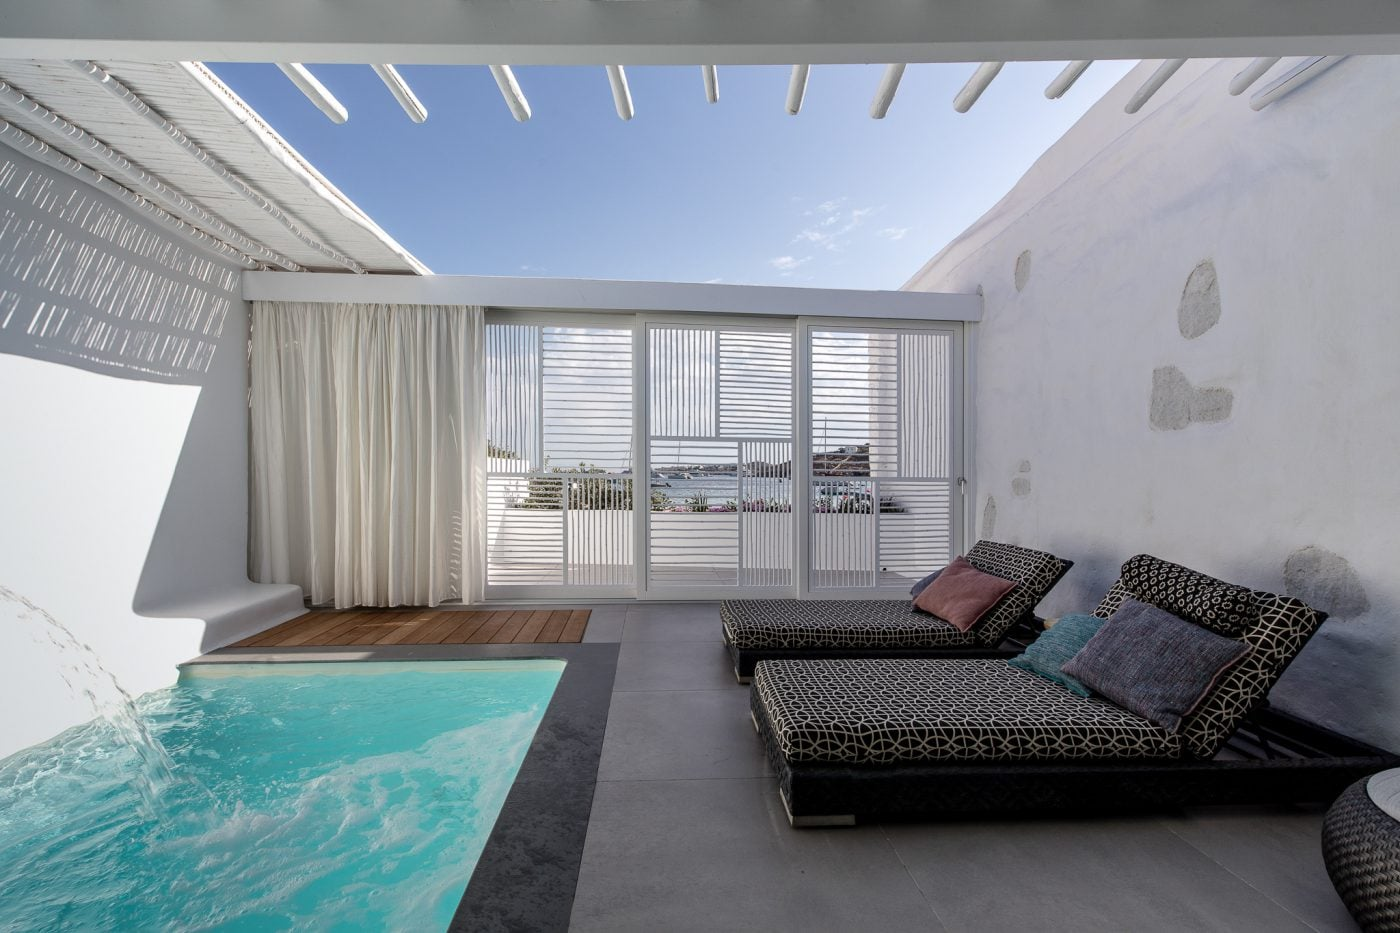 Pool and sunbeds in the private veranda of a luxury room in Mykonos Blanc Hotel